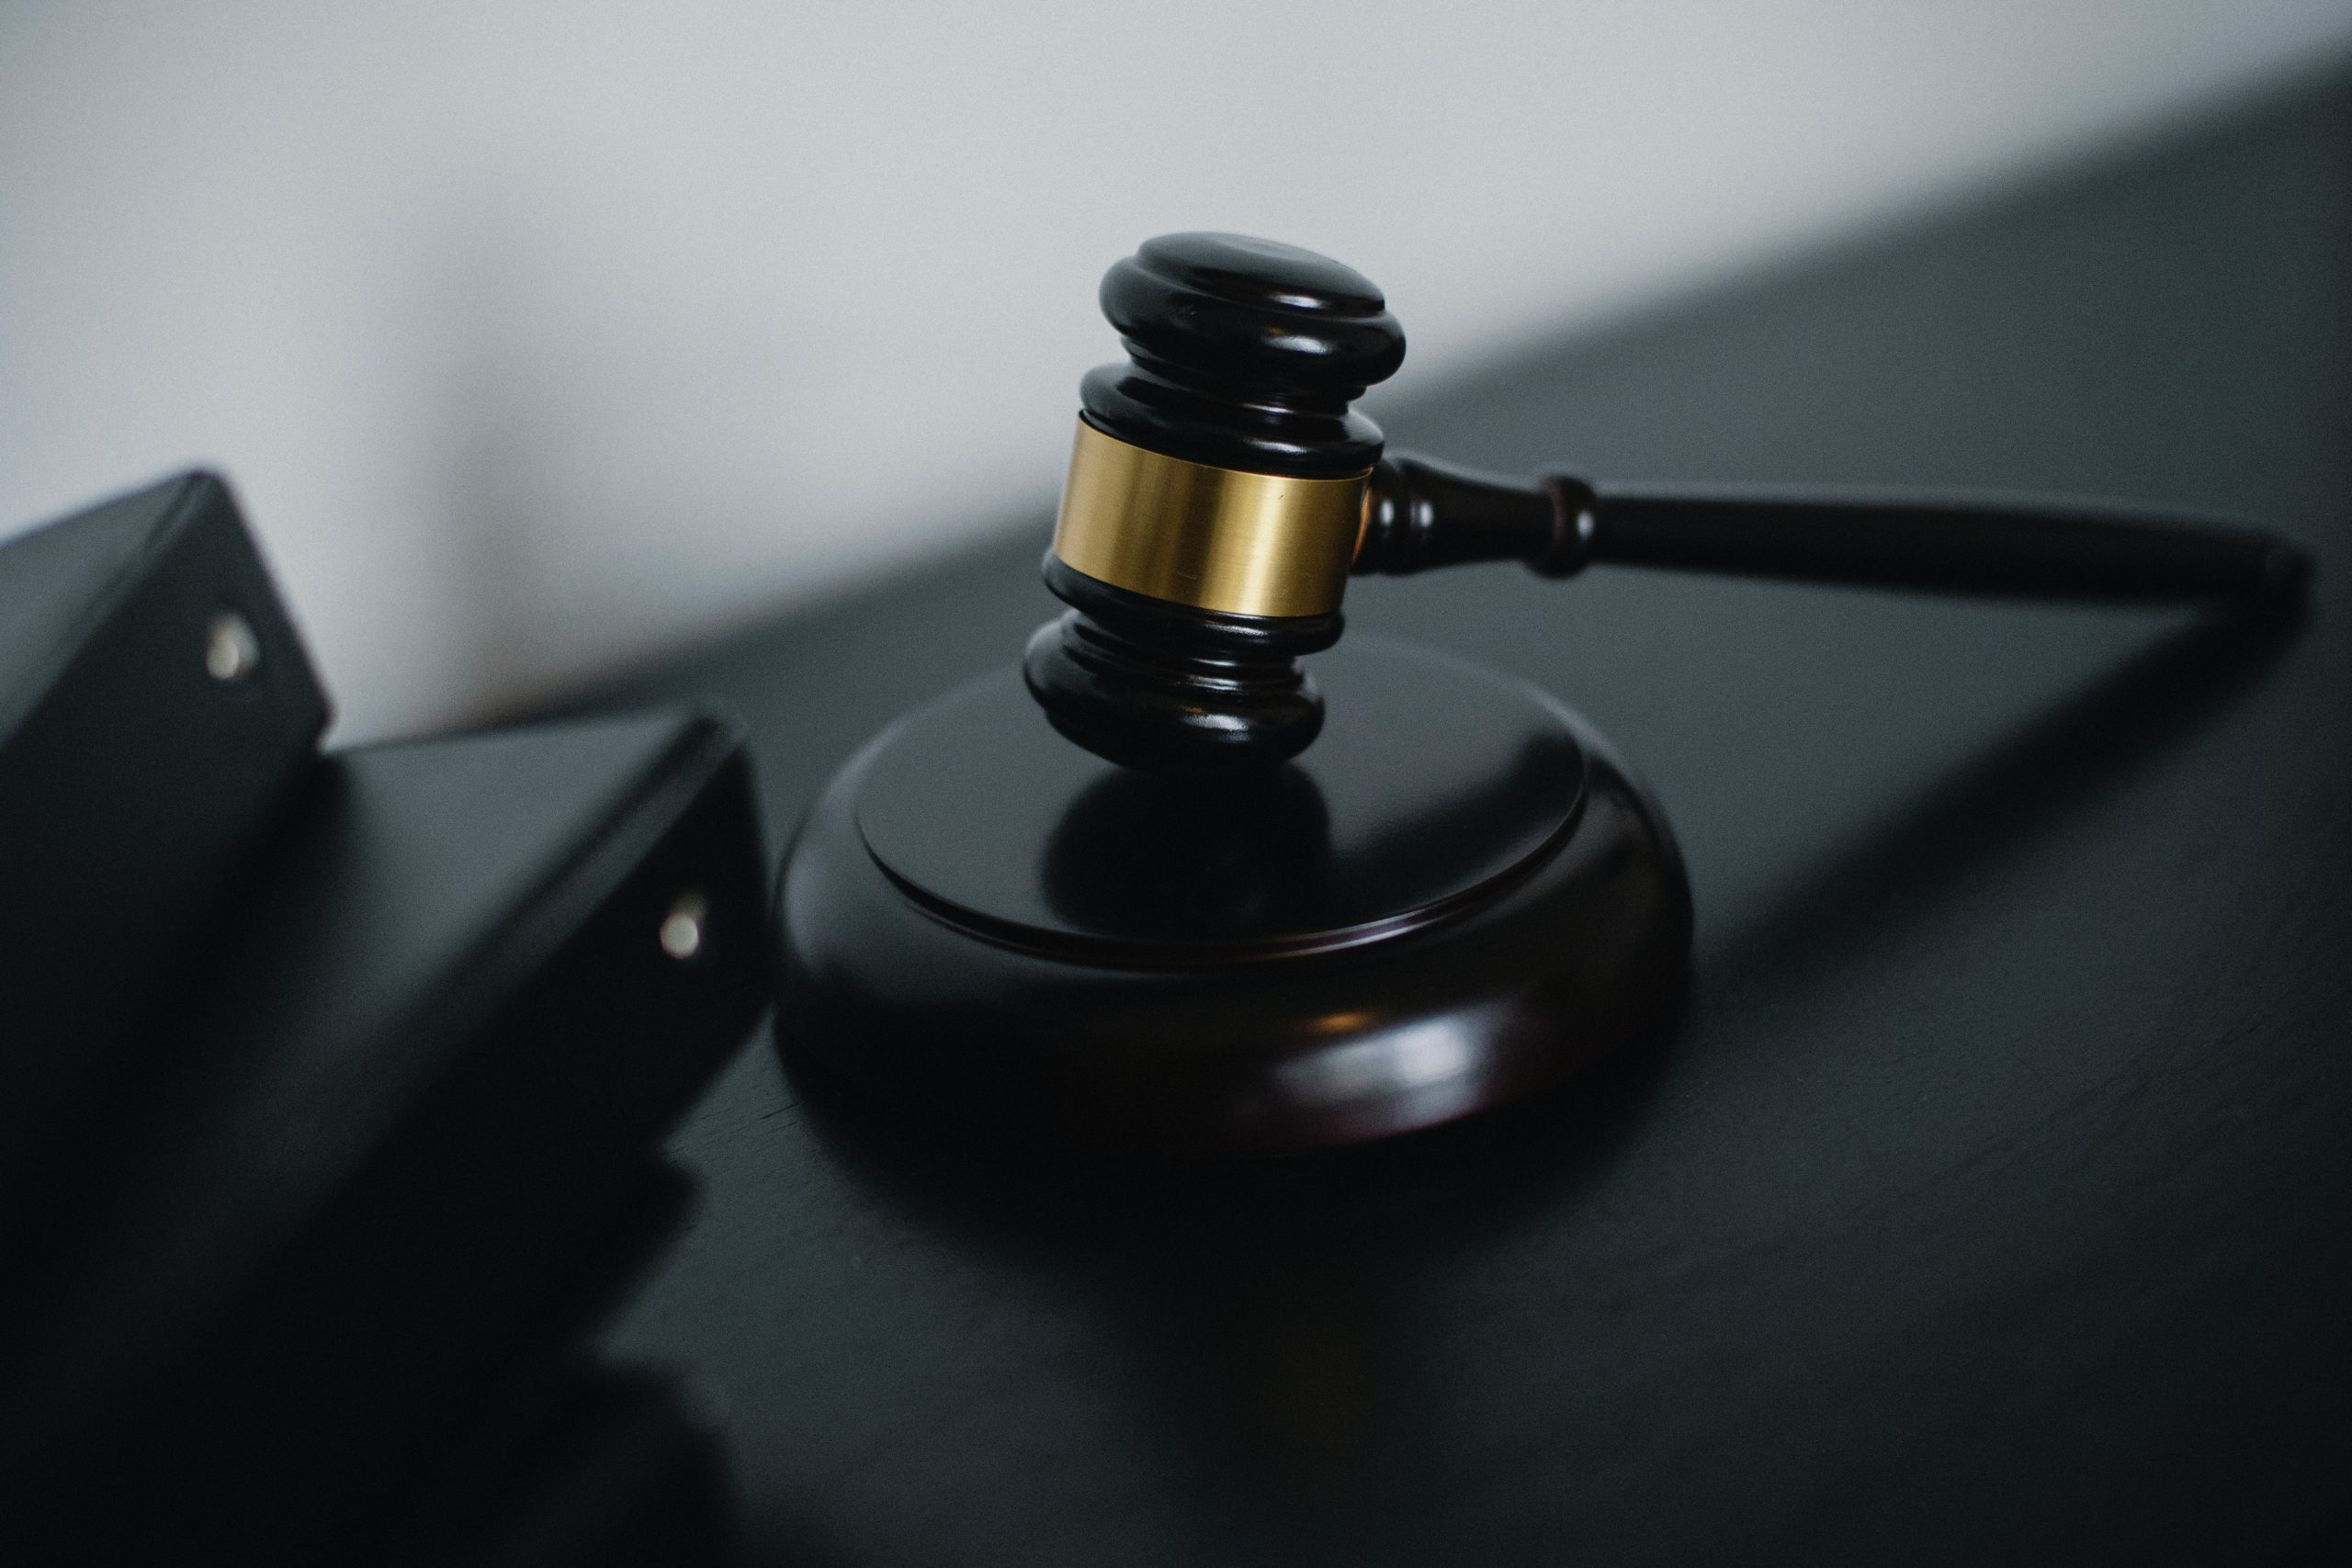 How To Hire a Wrongful Death Lawyer After a Tragic Loss